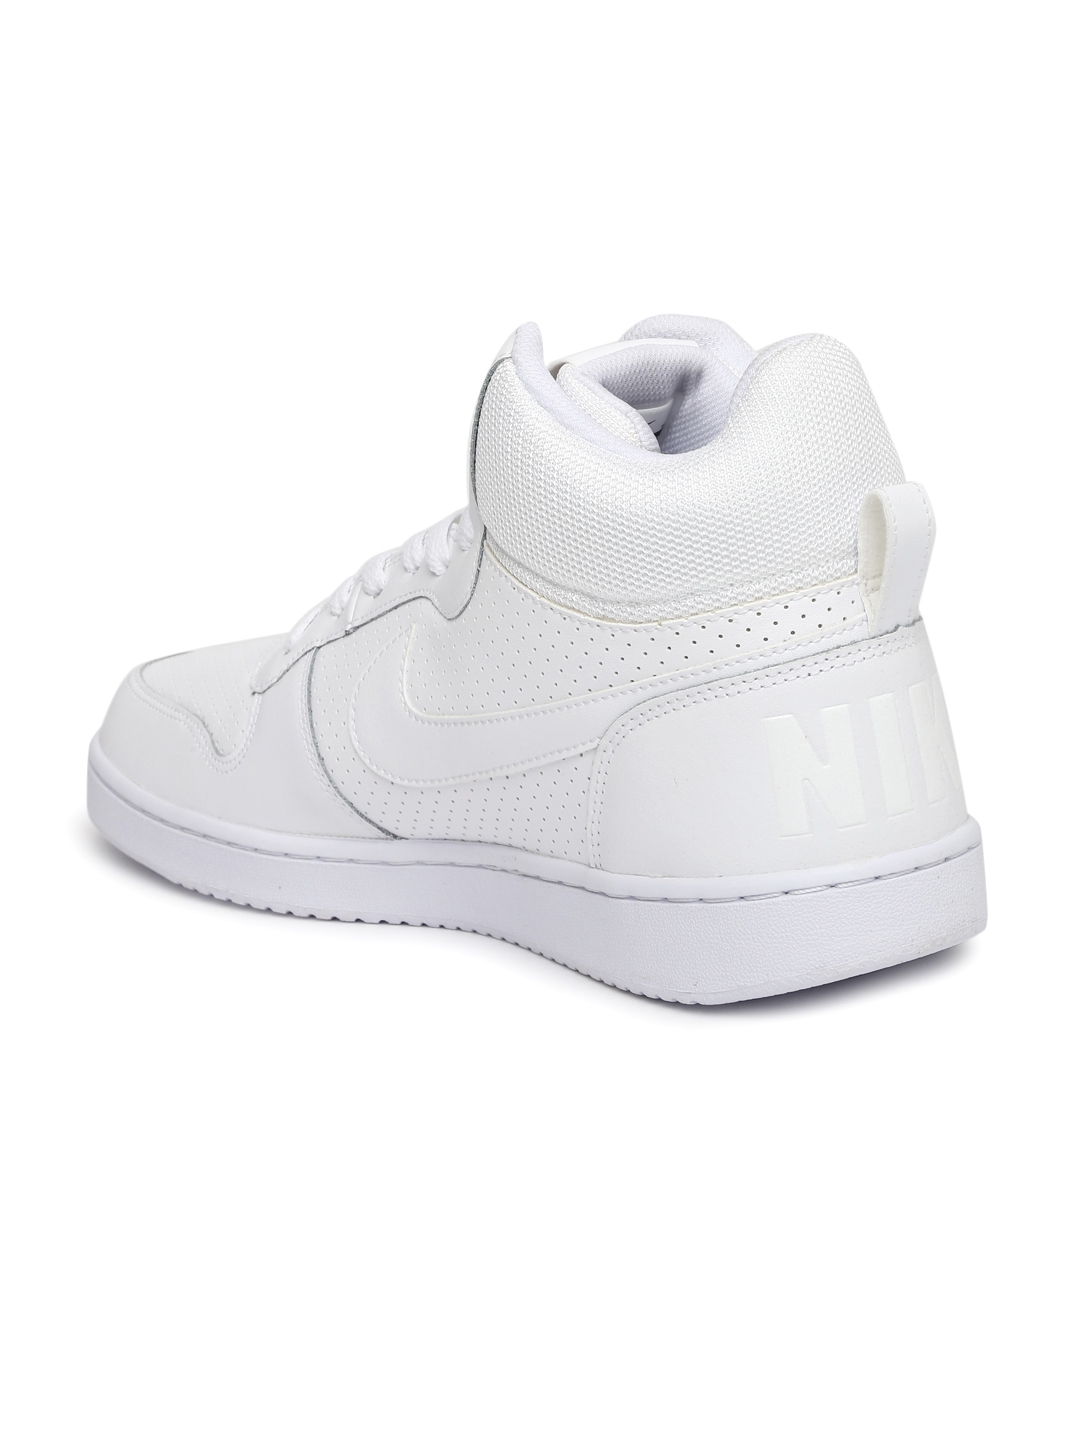 new product 530f8 9dd64 Men s Nike Court Borough Mid Shoe